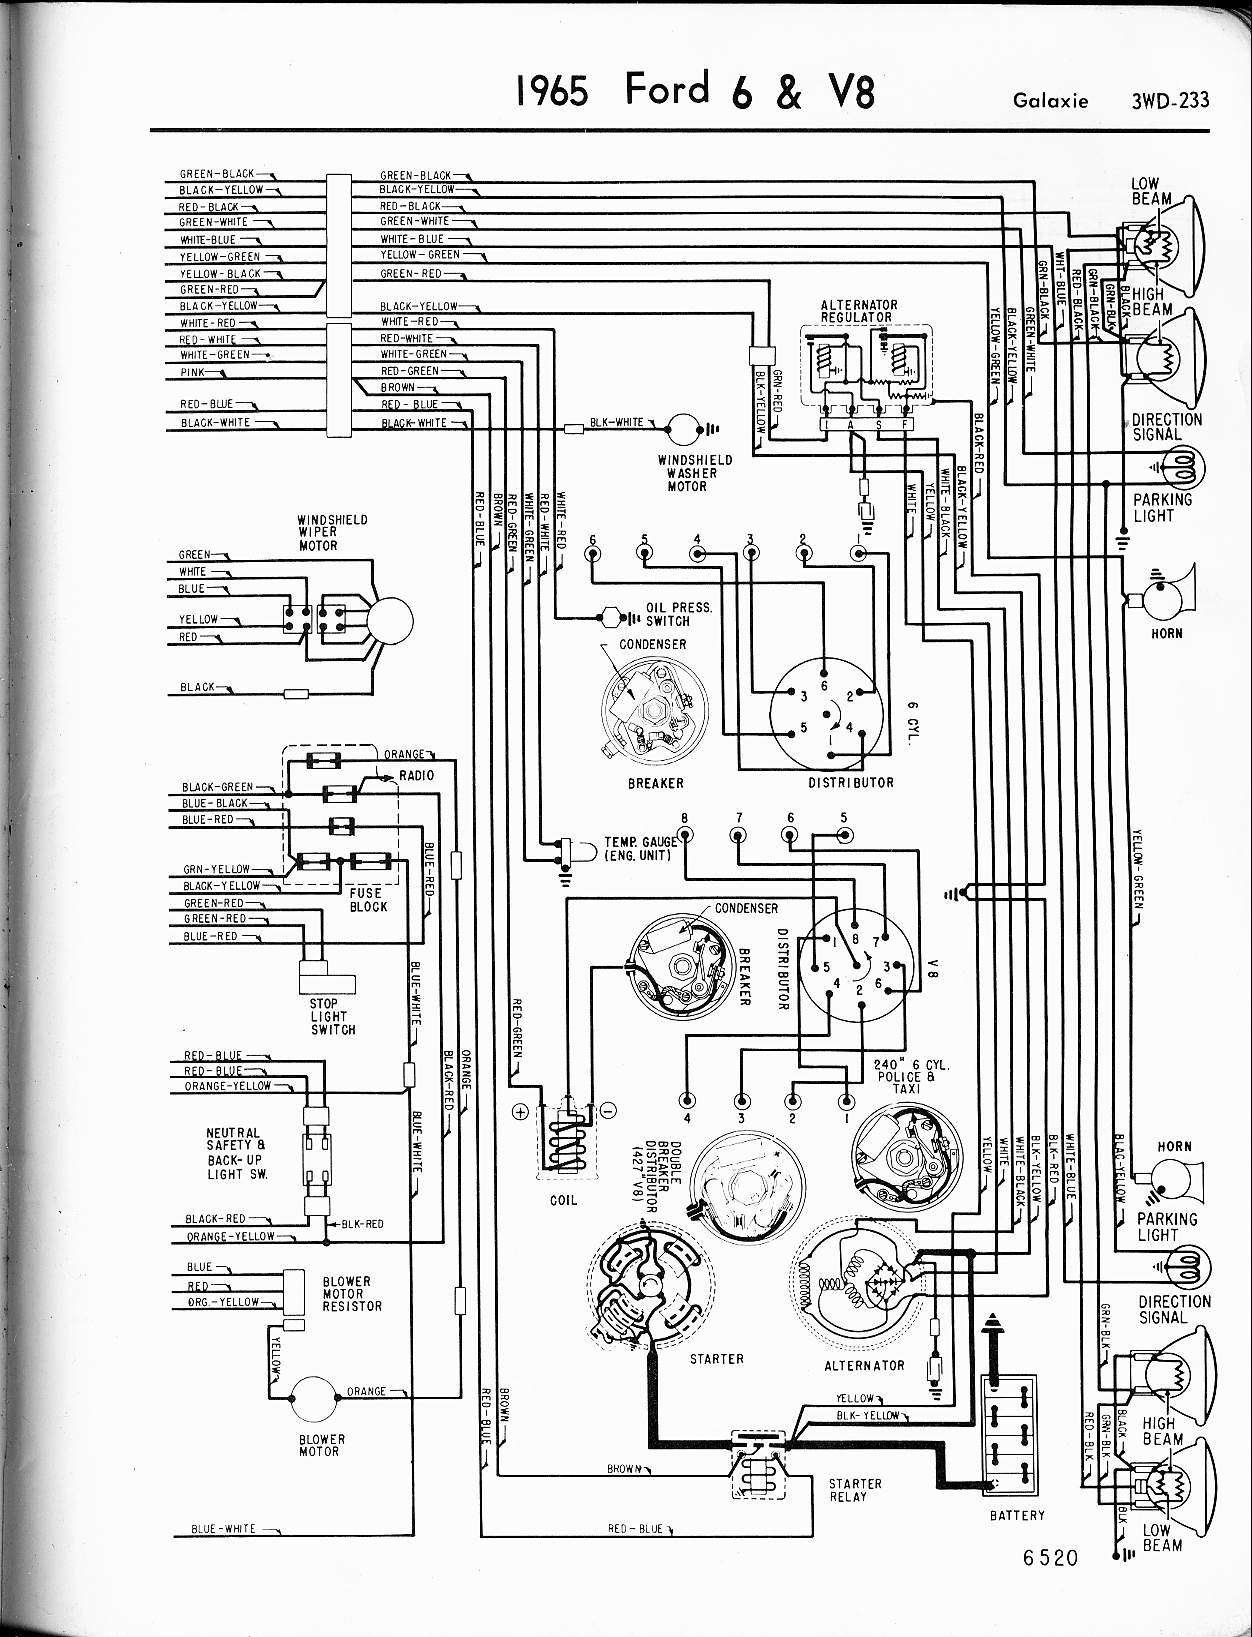 ford 4 6 v8 engine diagram ford think wiring diagram ford wiring Ford F-350 Ignition Module Wiring ford think wiring diagram ford wiring diagrams